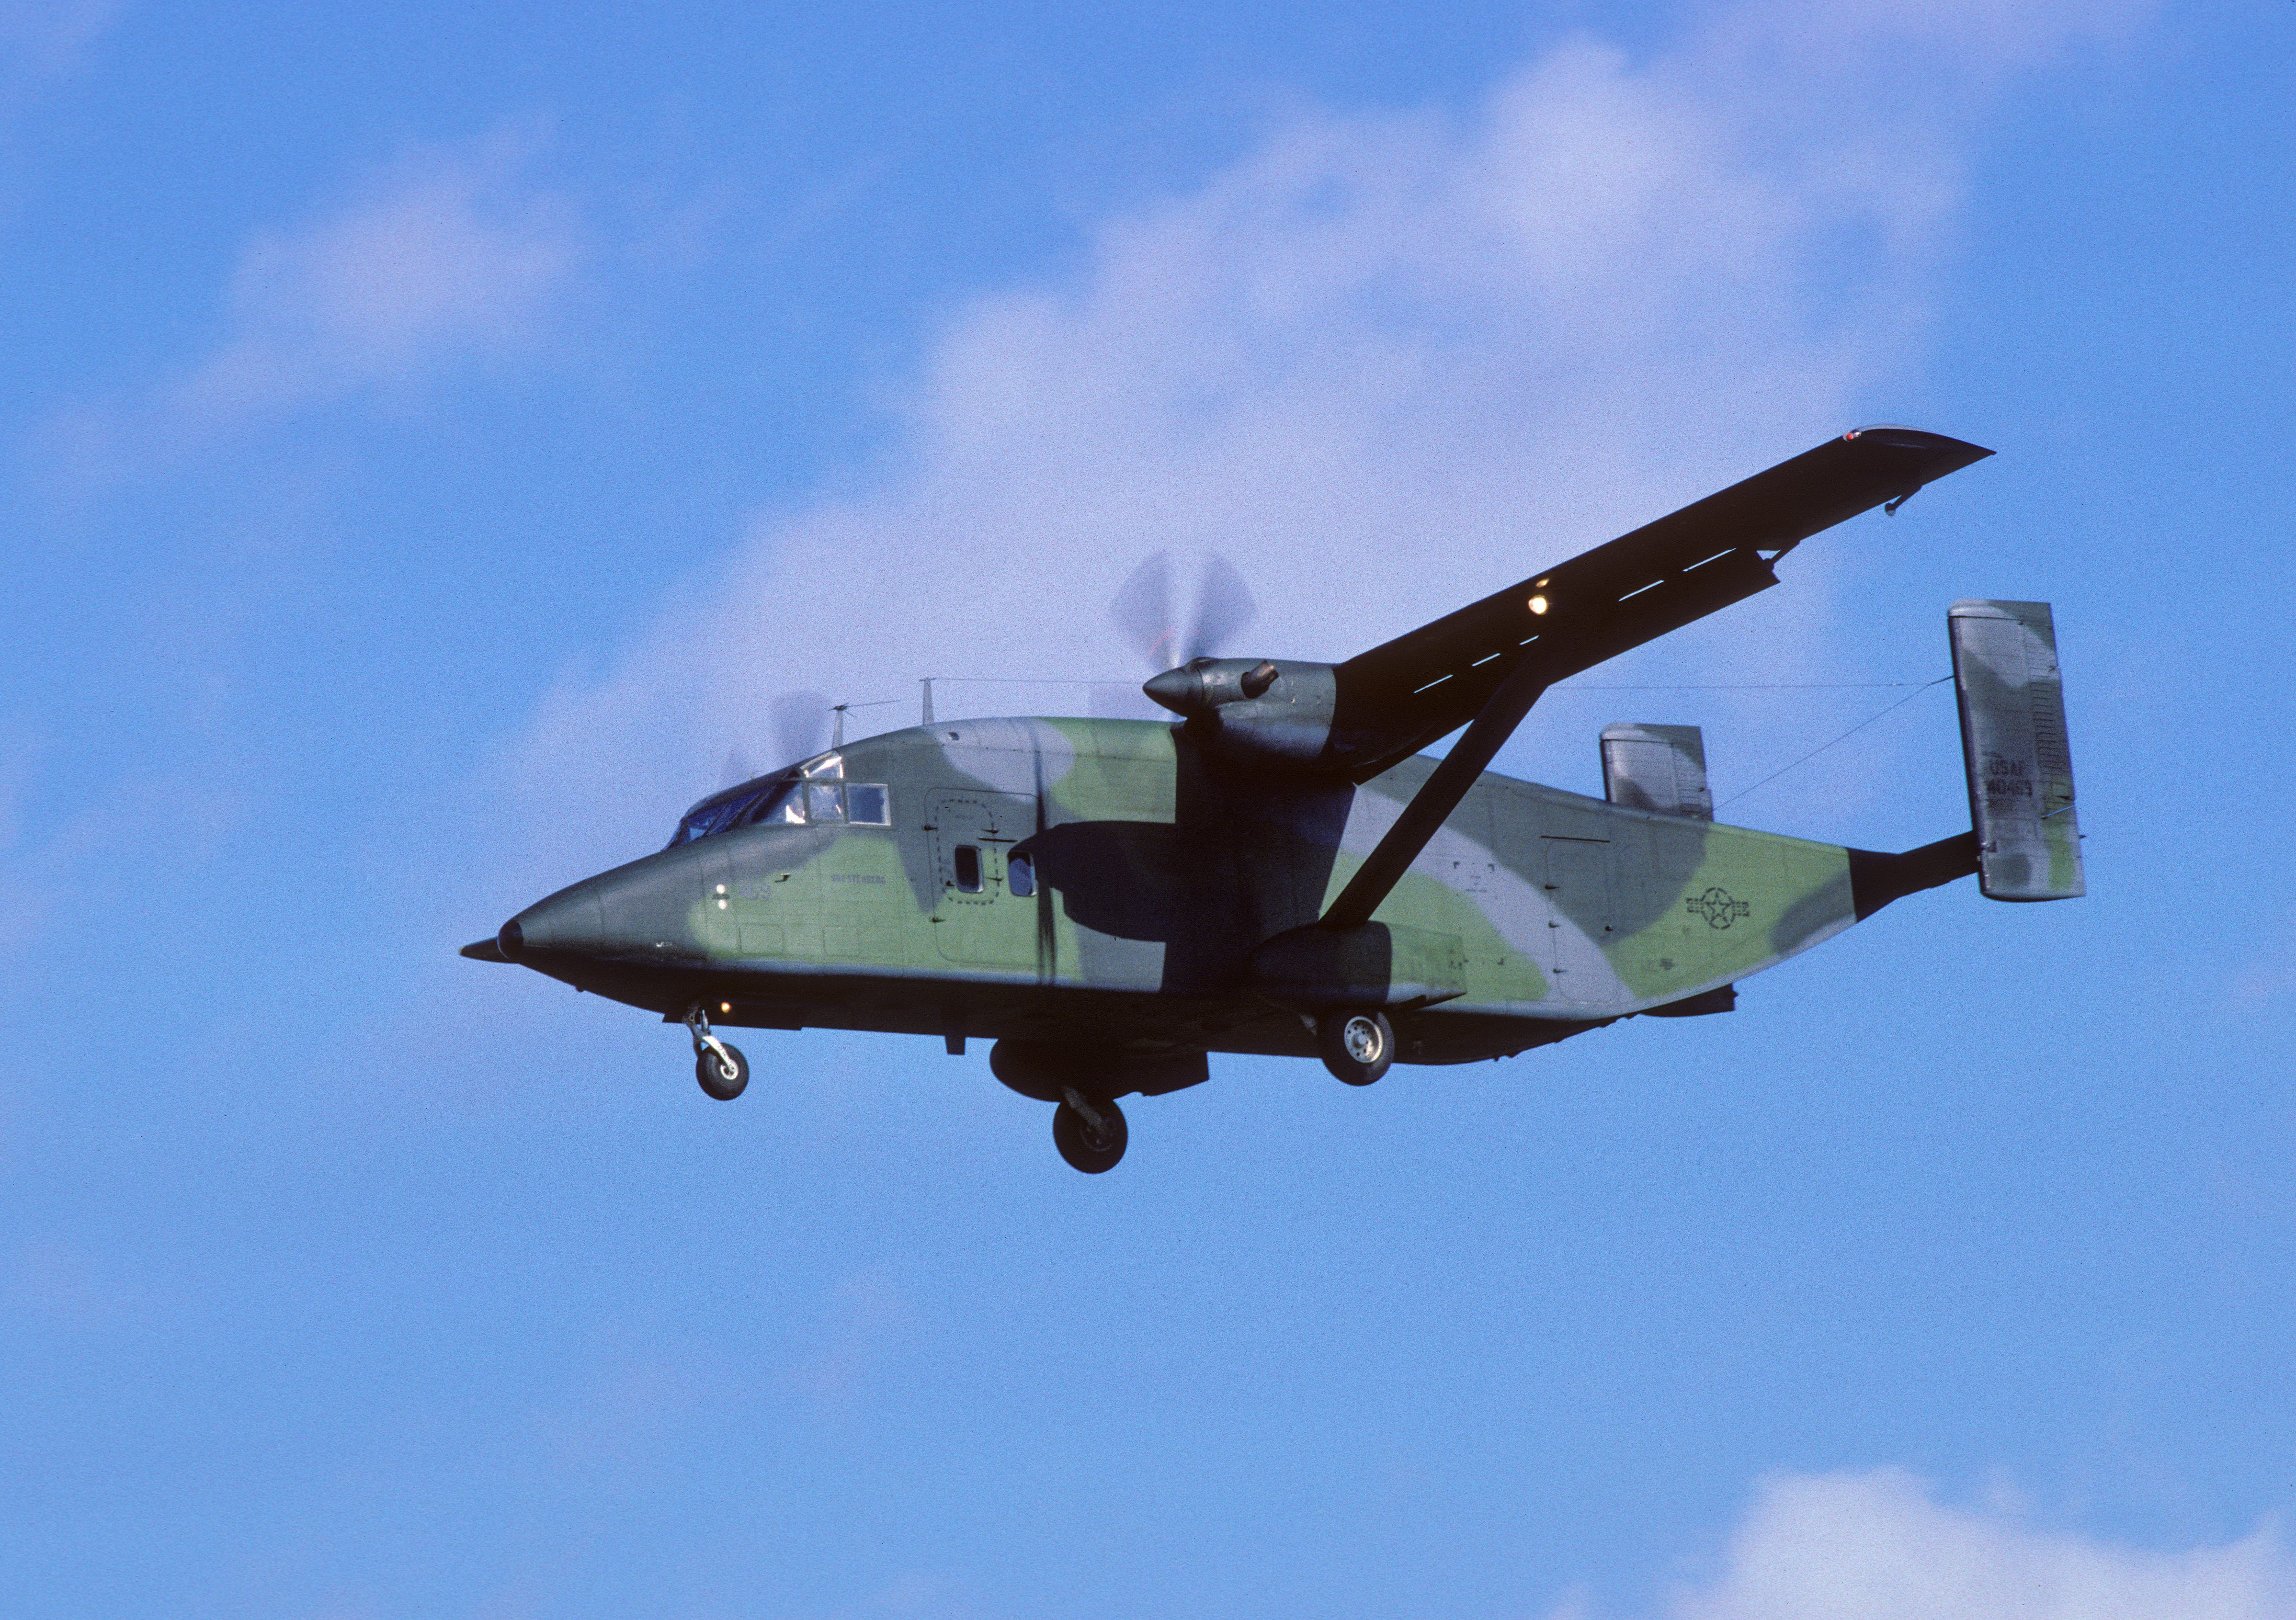 C-23A Sherpa [Peter R Foster]